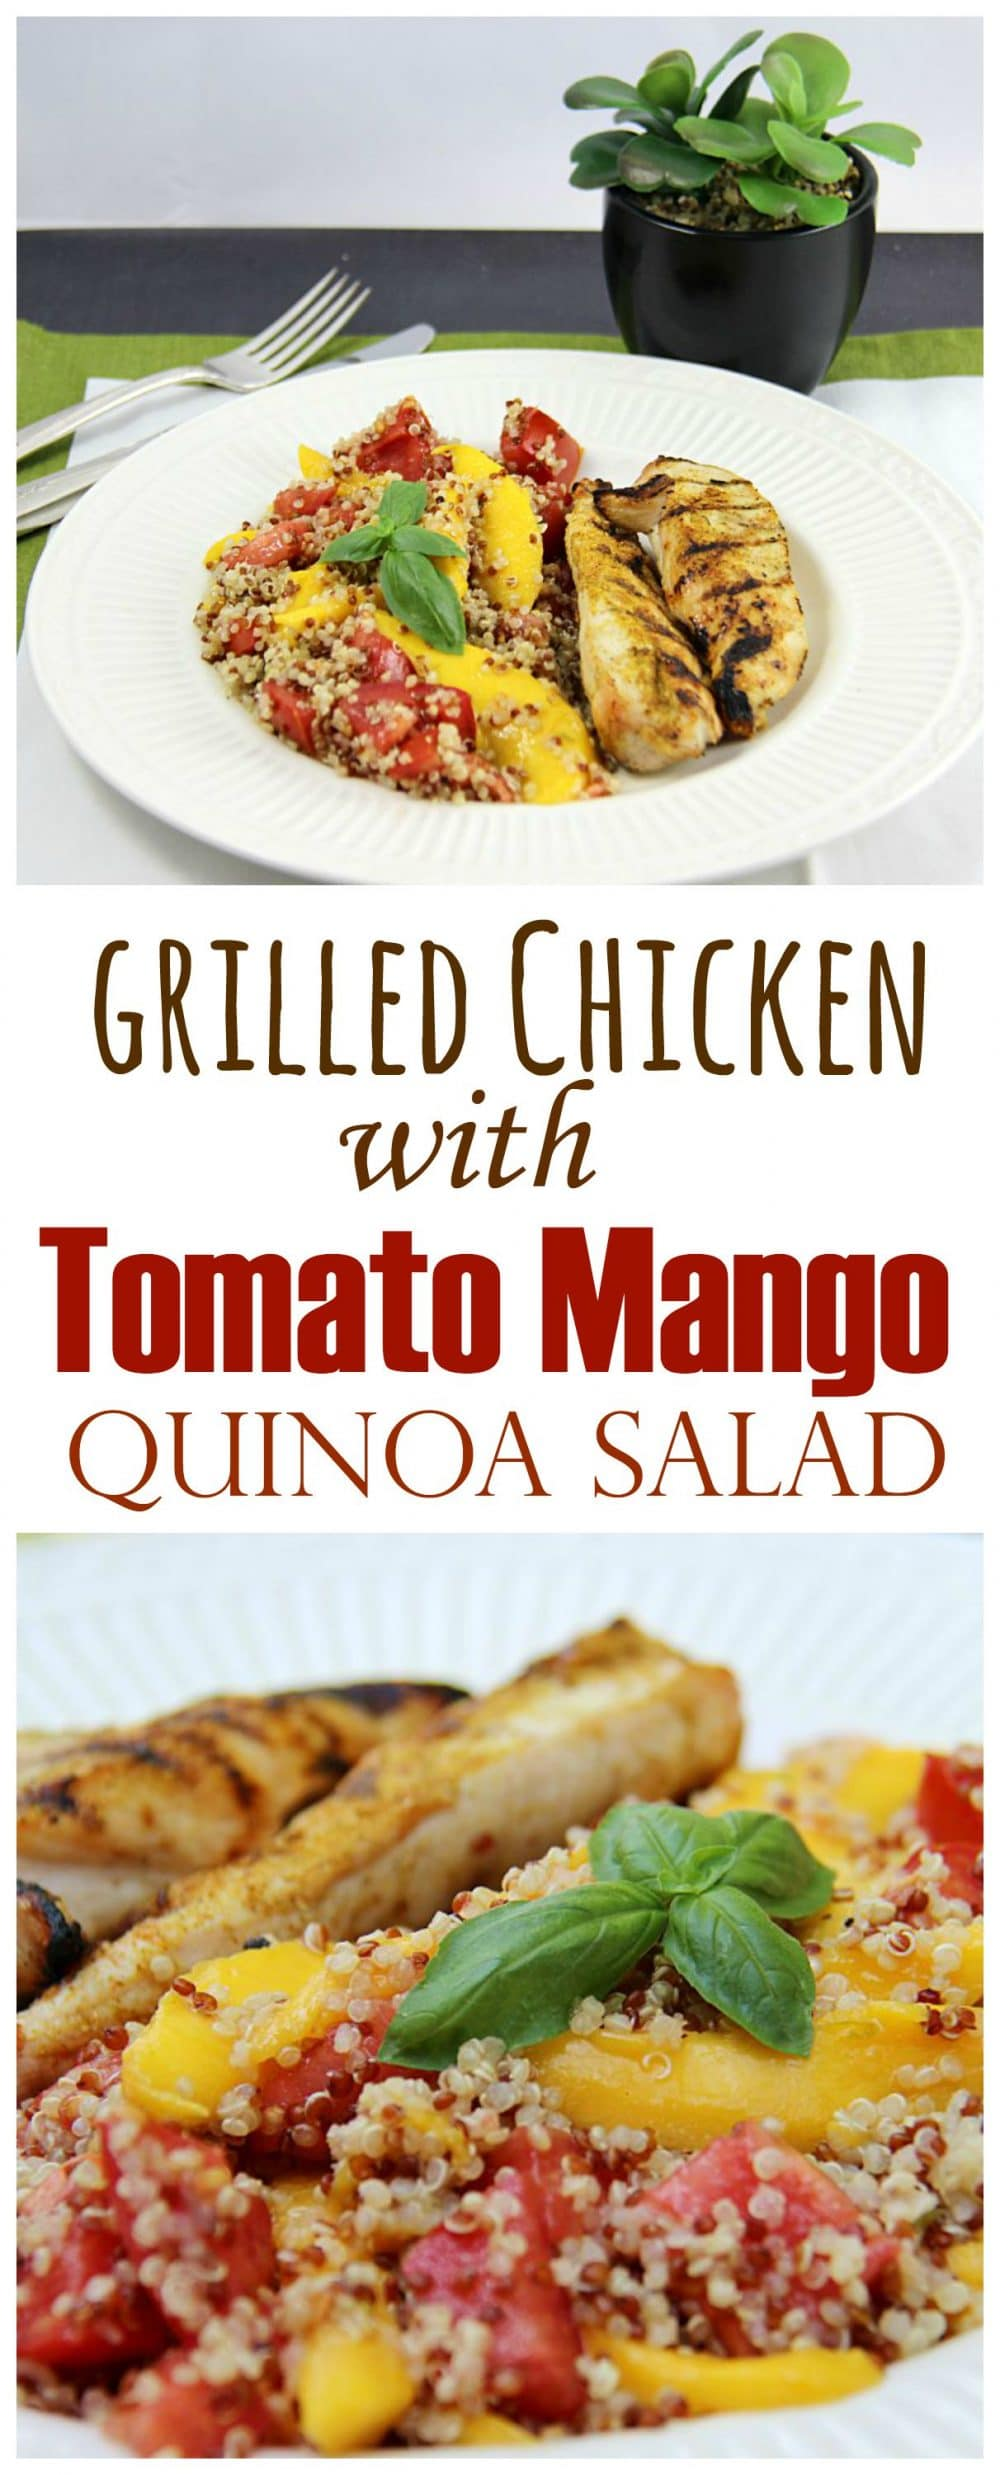 Grilled Chicken with Tomato Mango Quinoa Salad long